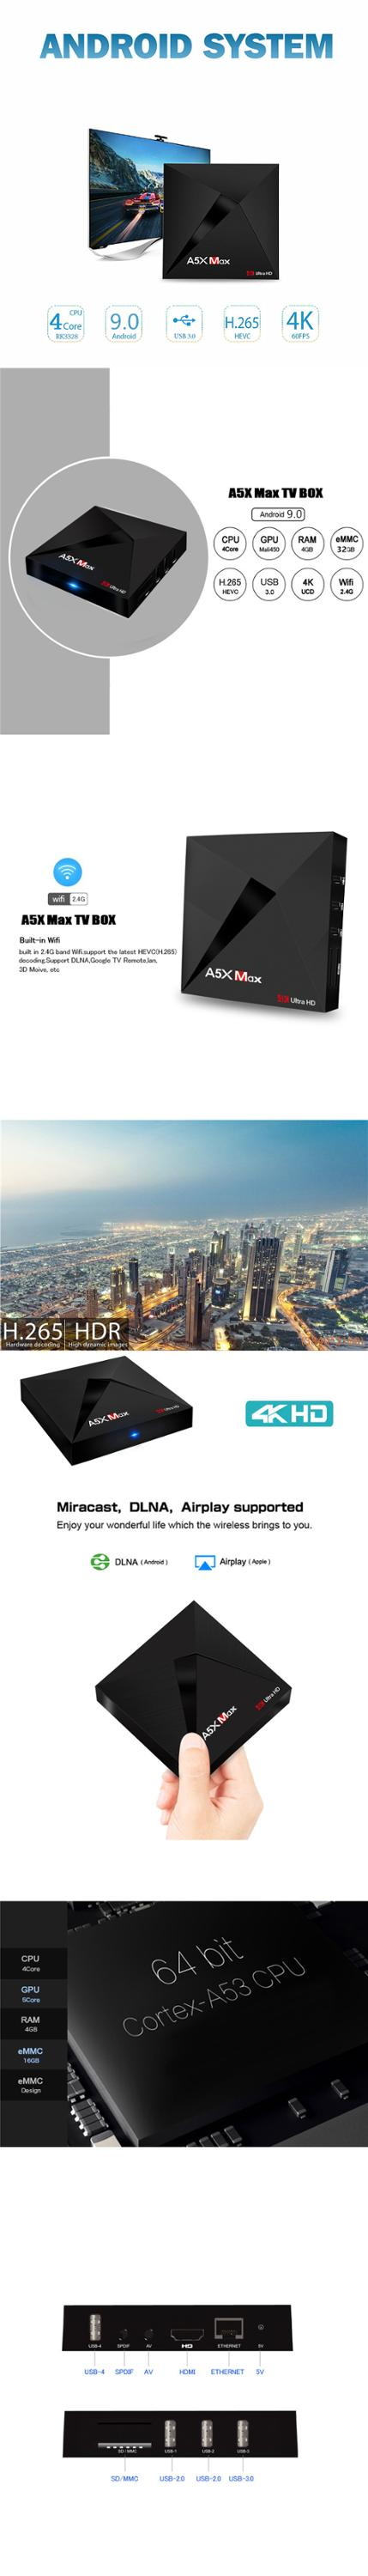 A5X MAX RK3328 live tv box Android 9.0 4G 32G download user manual for set top box with wireless mouse for iptv box